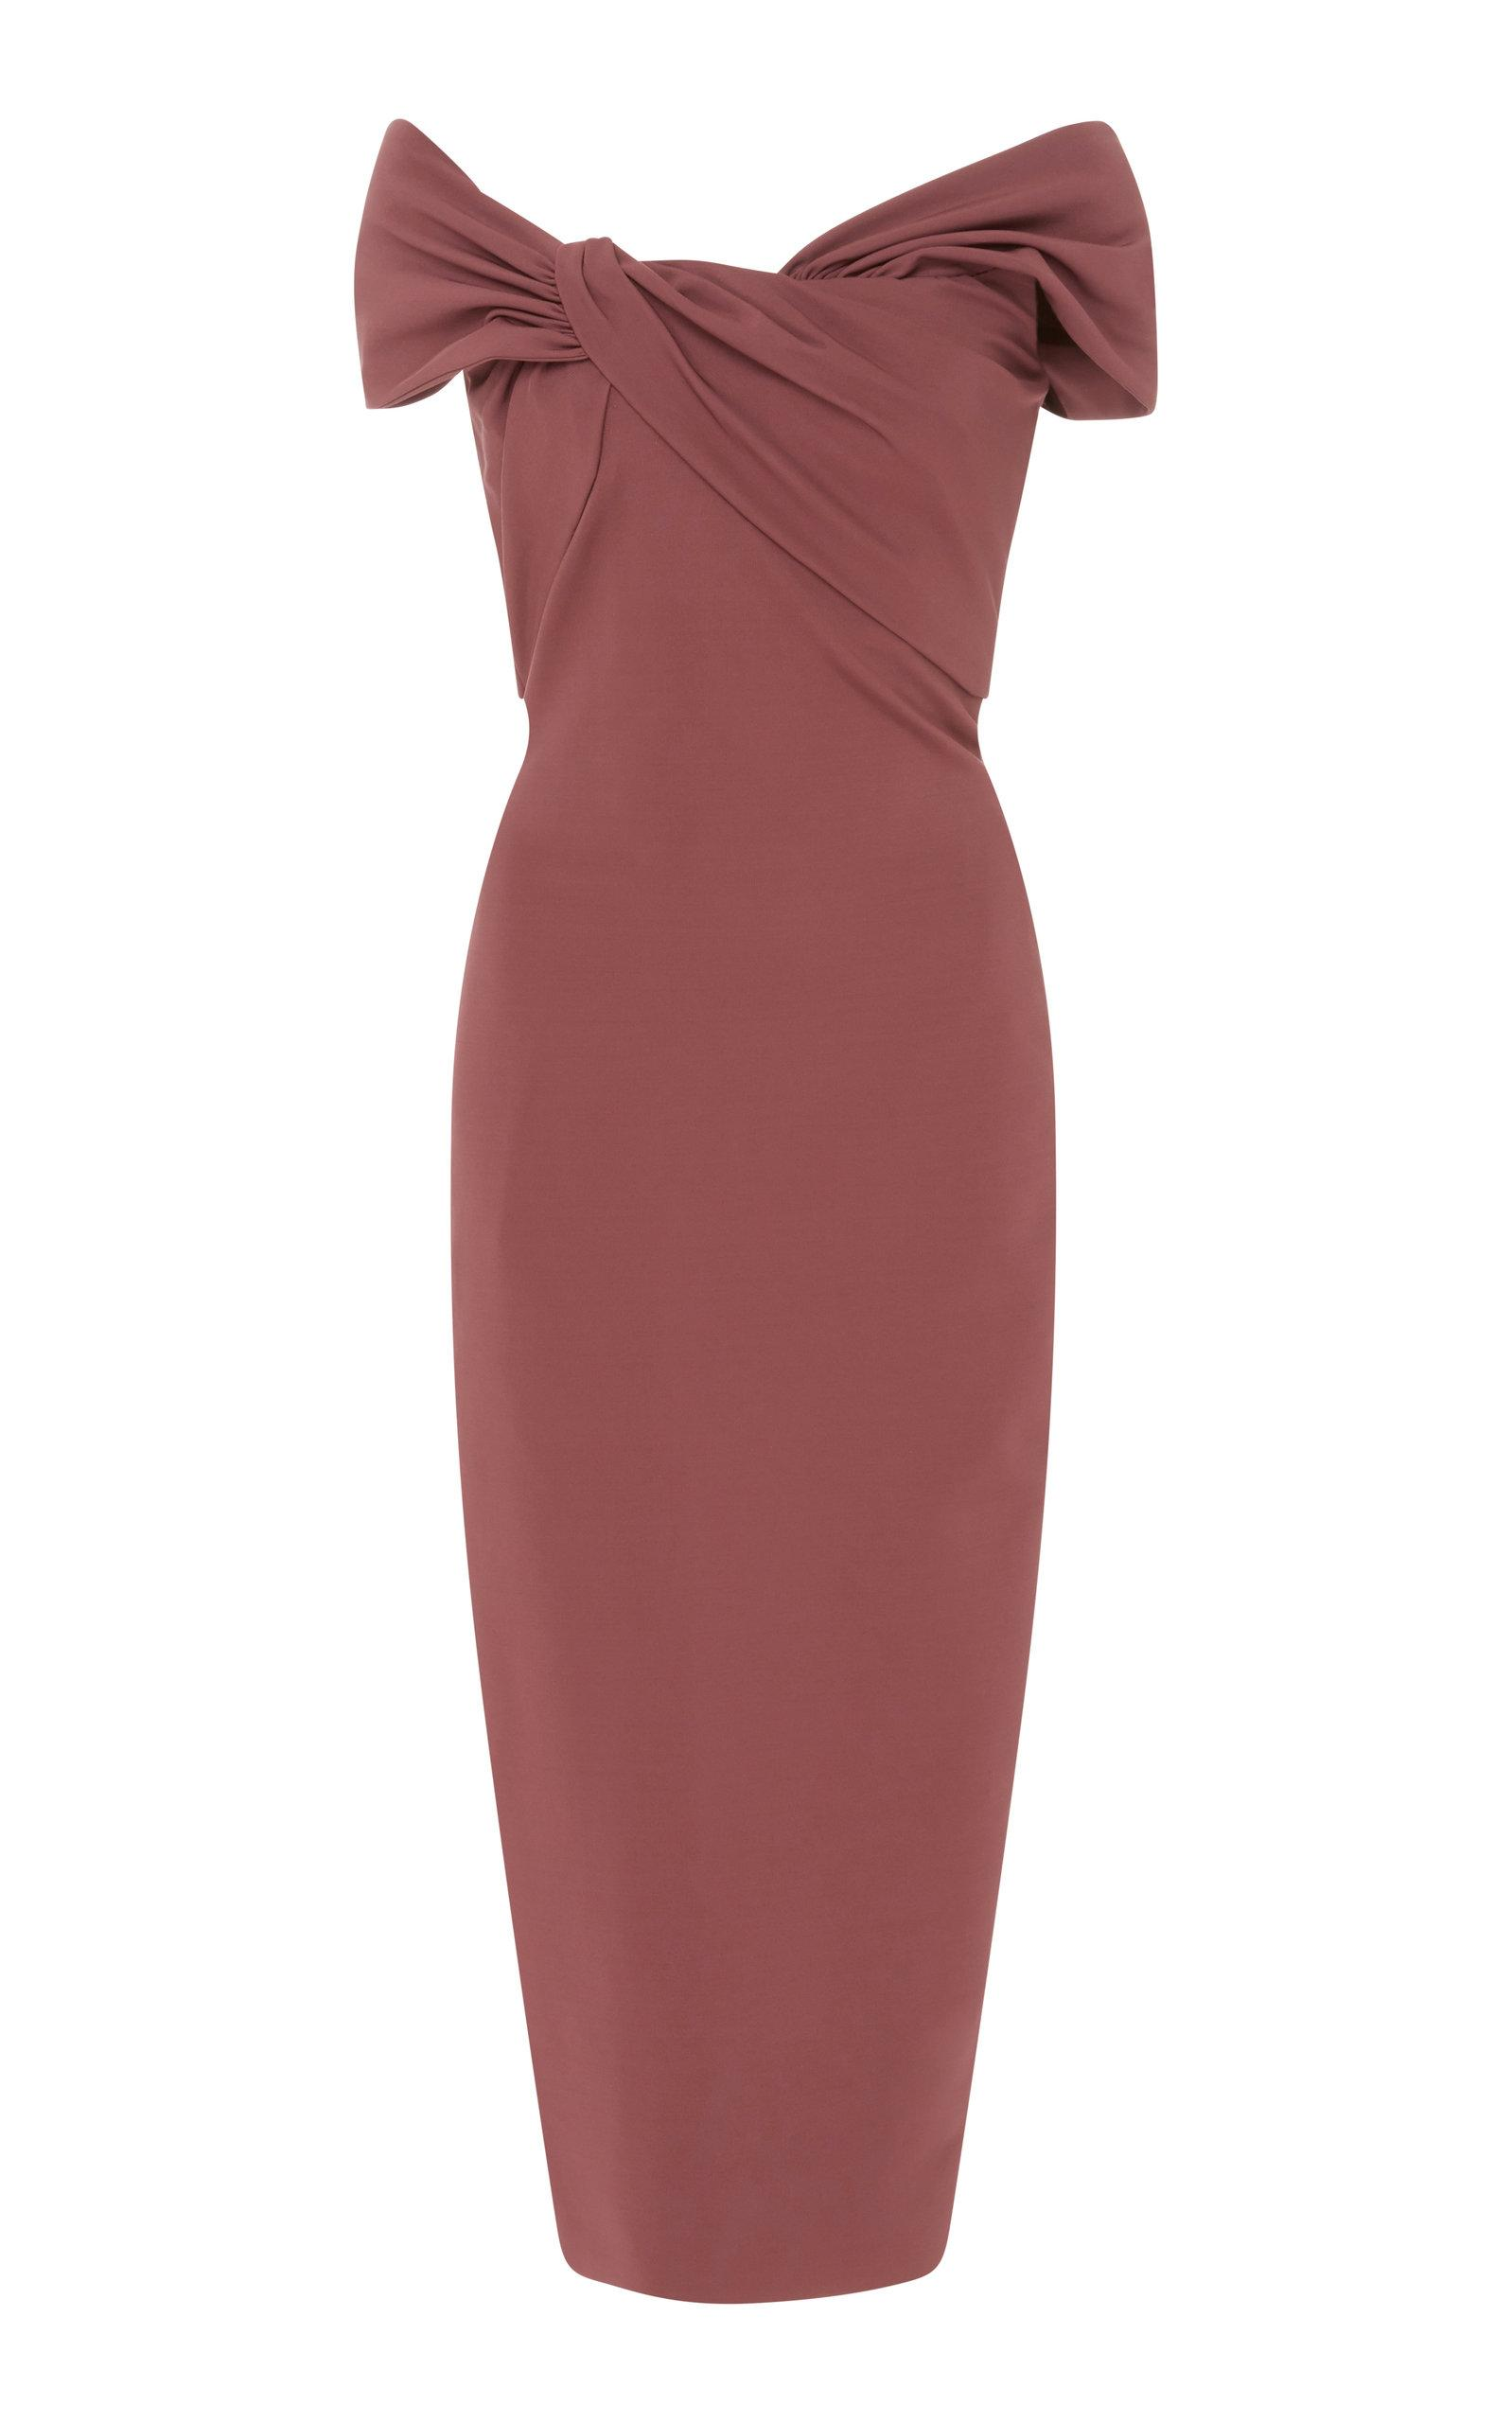 191a0153b752 Cushnie Et Ochs Off-The-Shoulder Pencil Dress With Twist Detail At Neck In